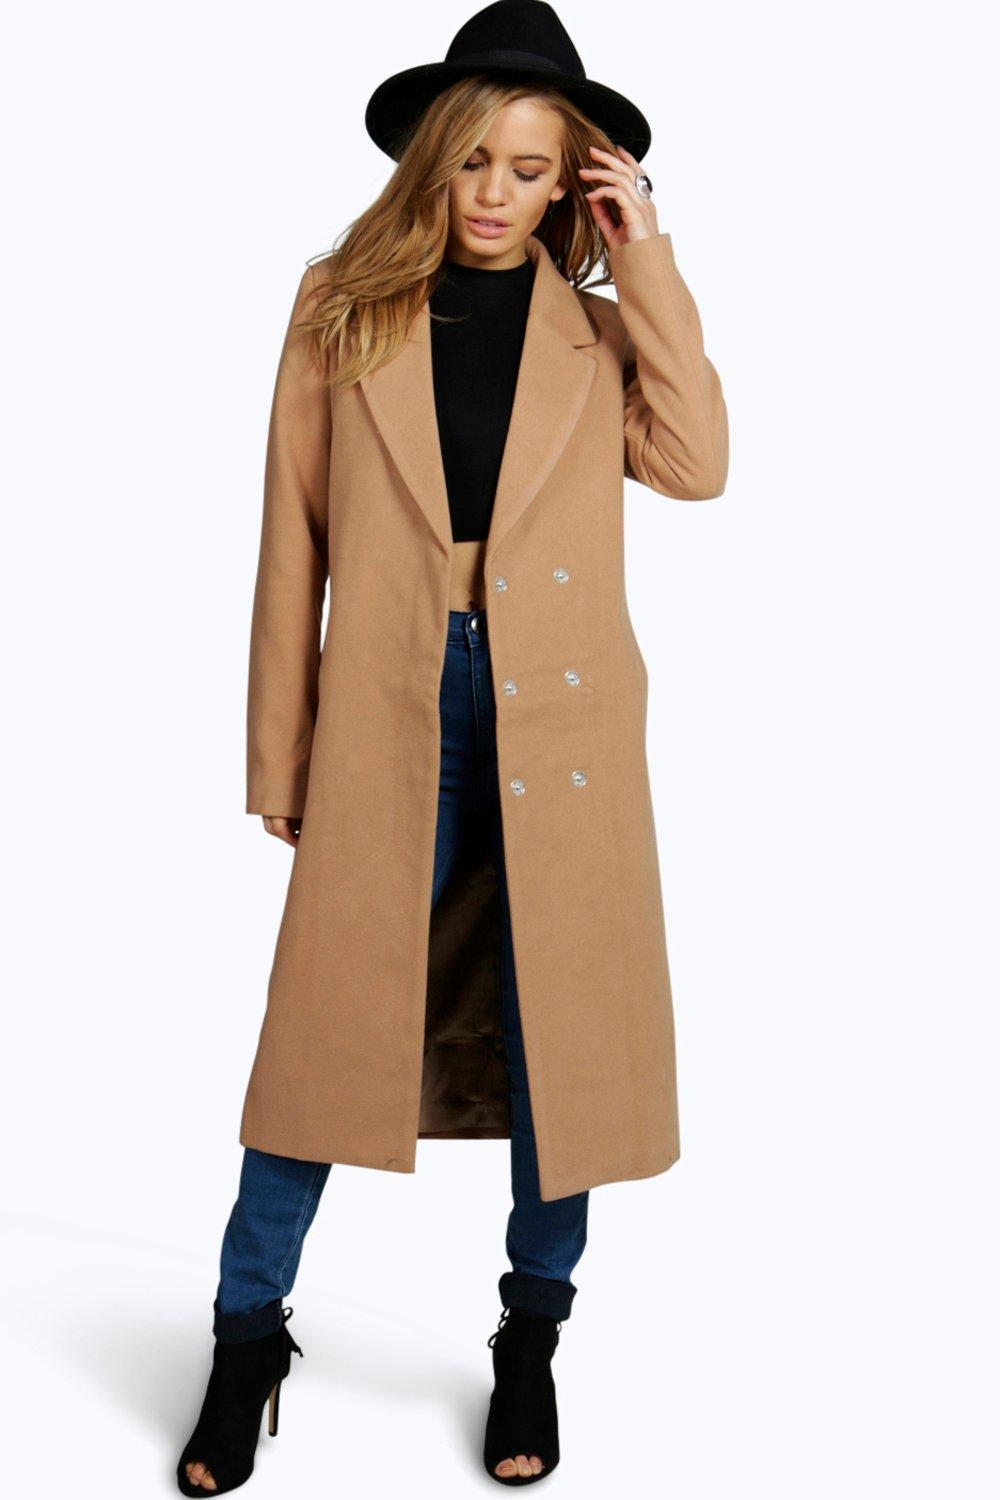 quality products new concept newest Petite Kyla Longline Camel Duster Coat   Boohoo